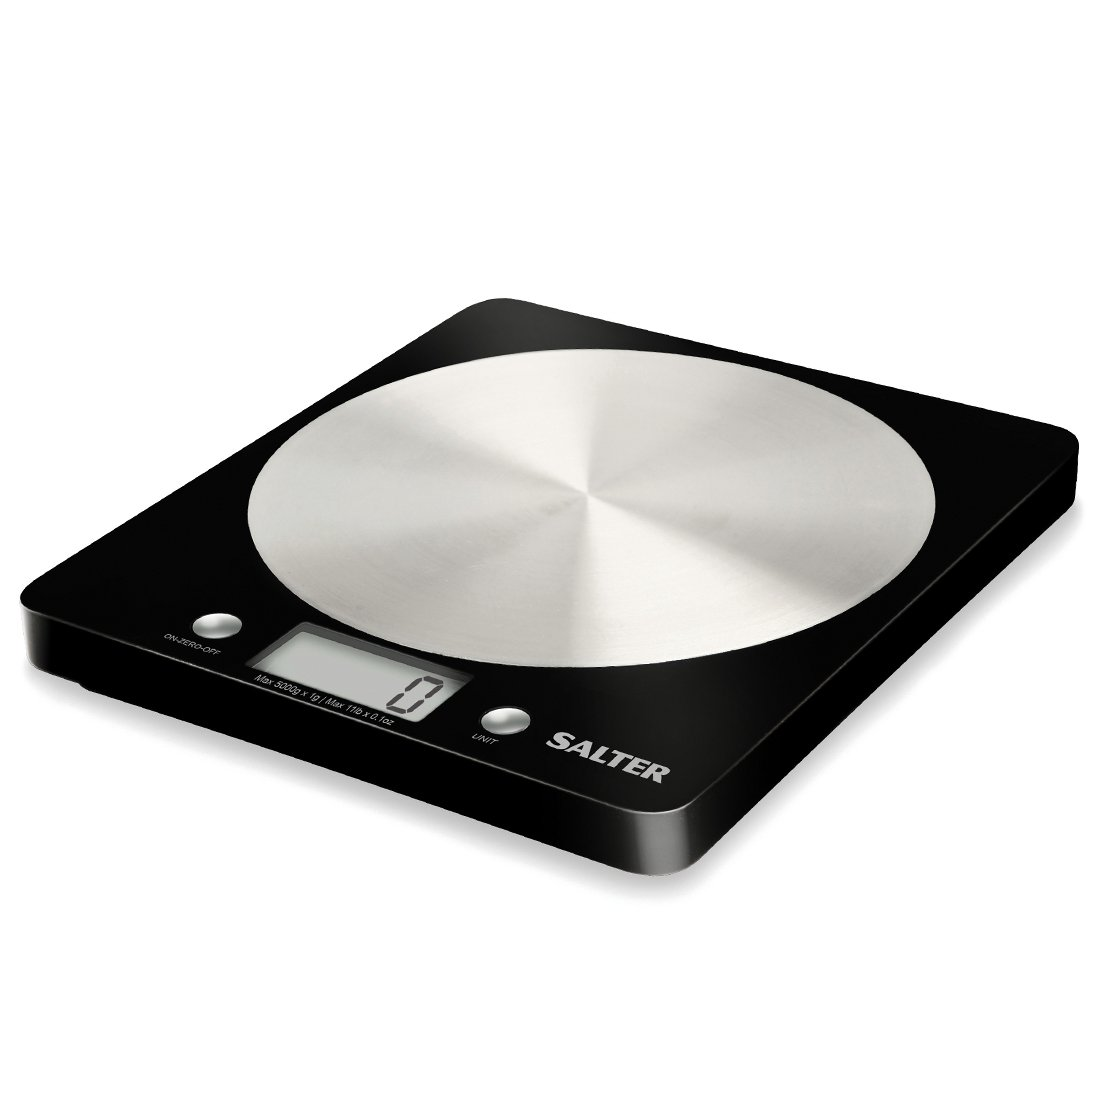 Salter Digital Kitchen Weighing Scales